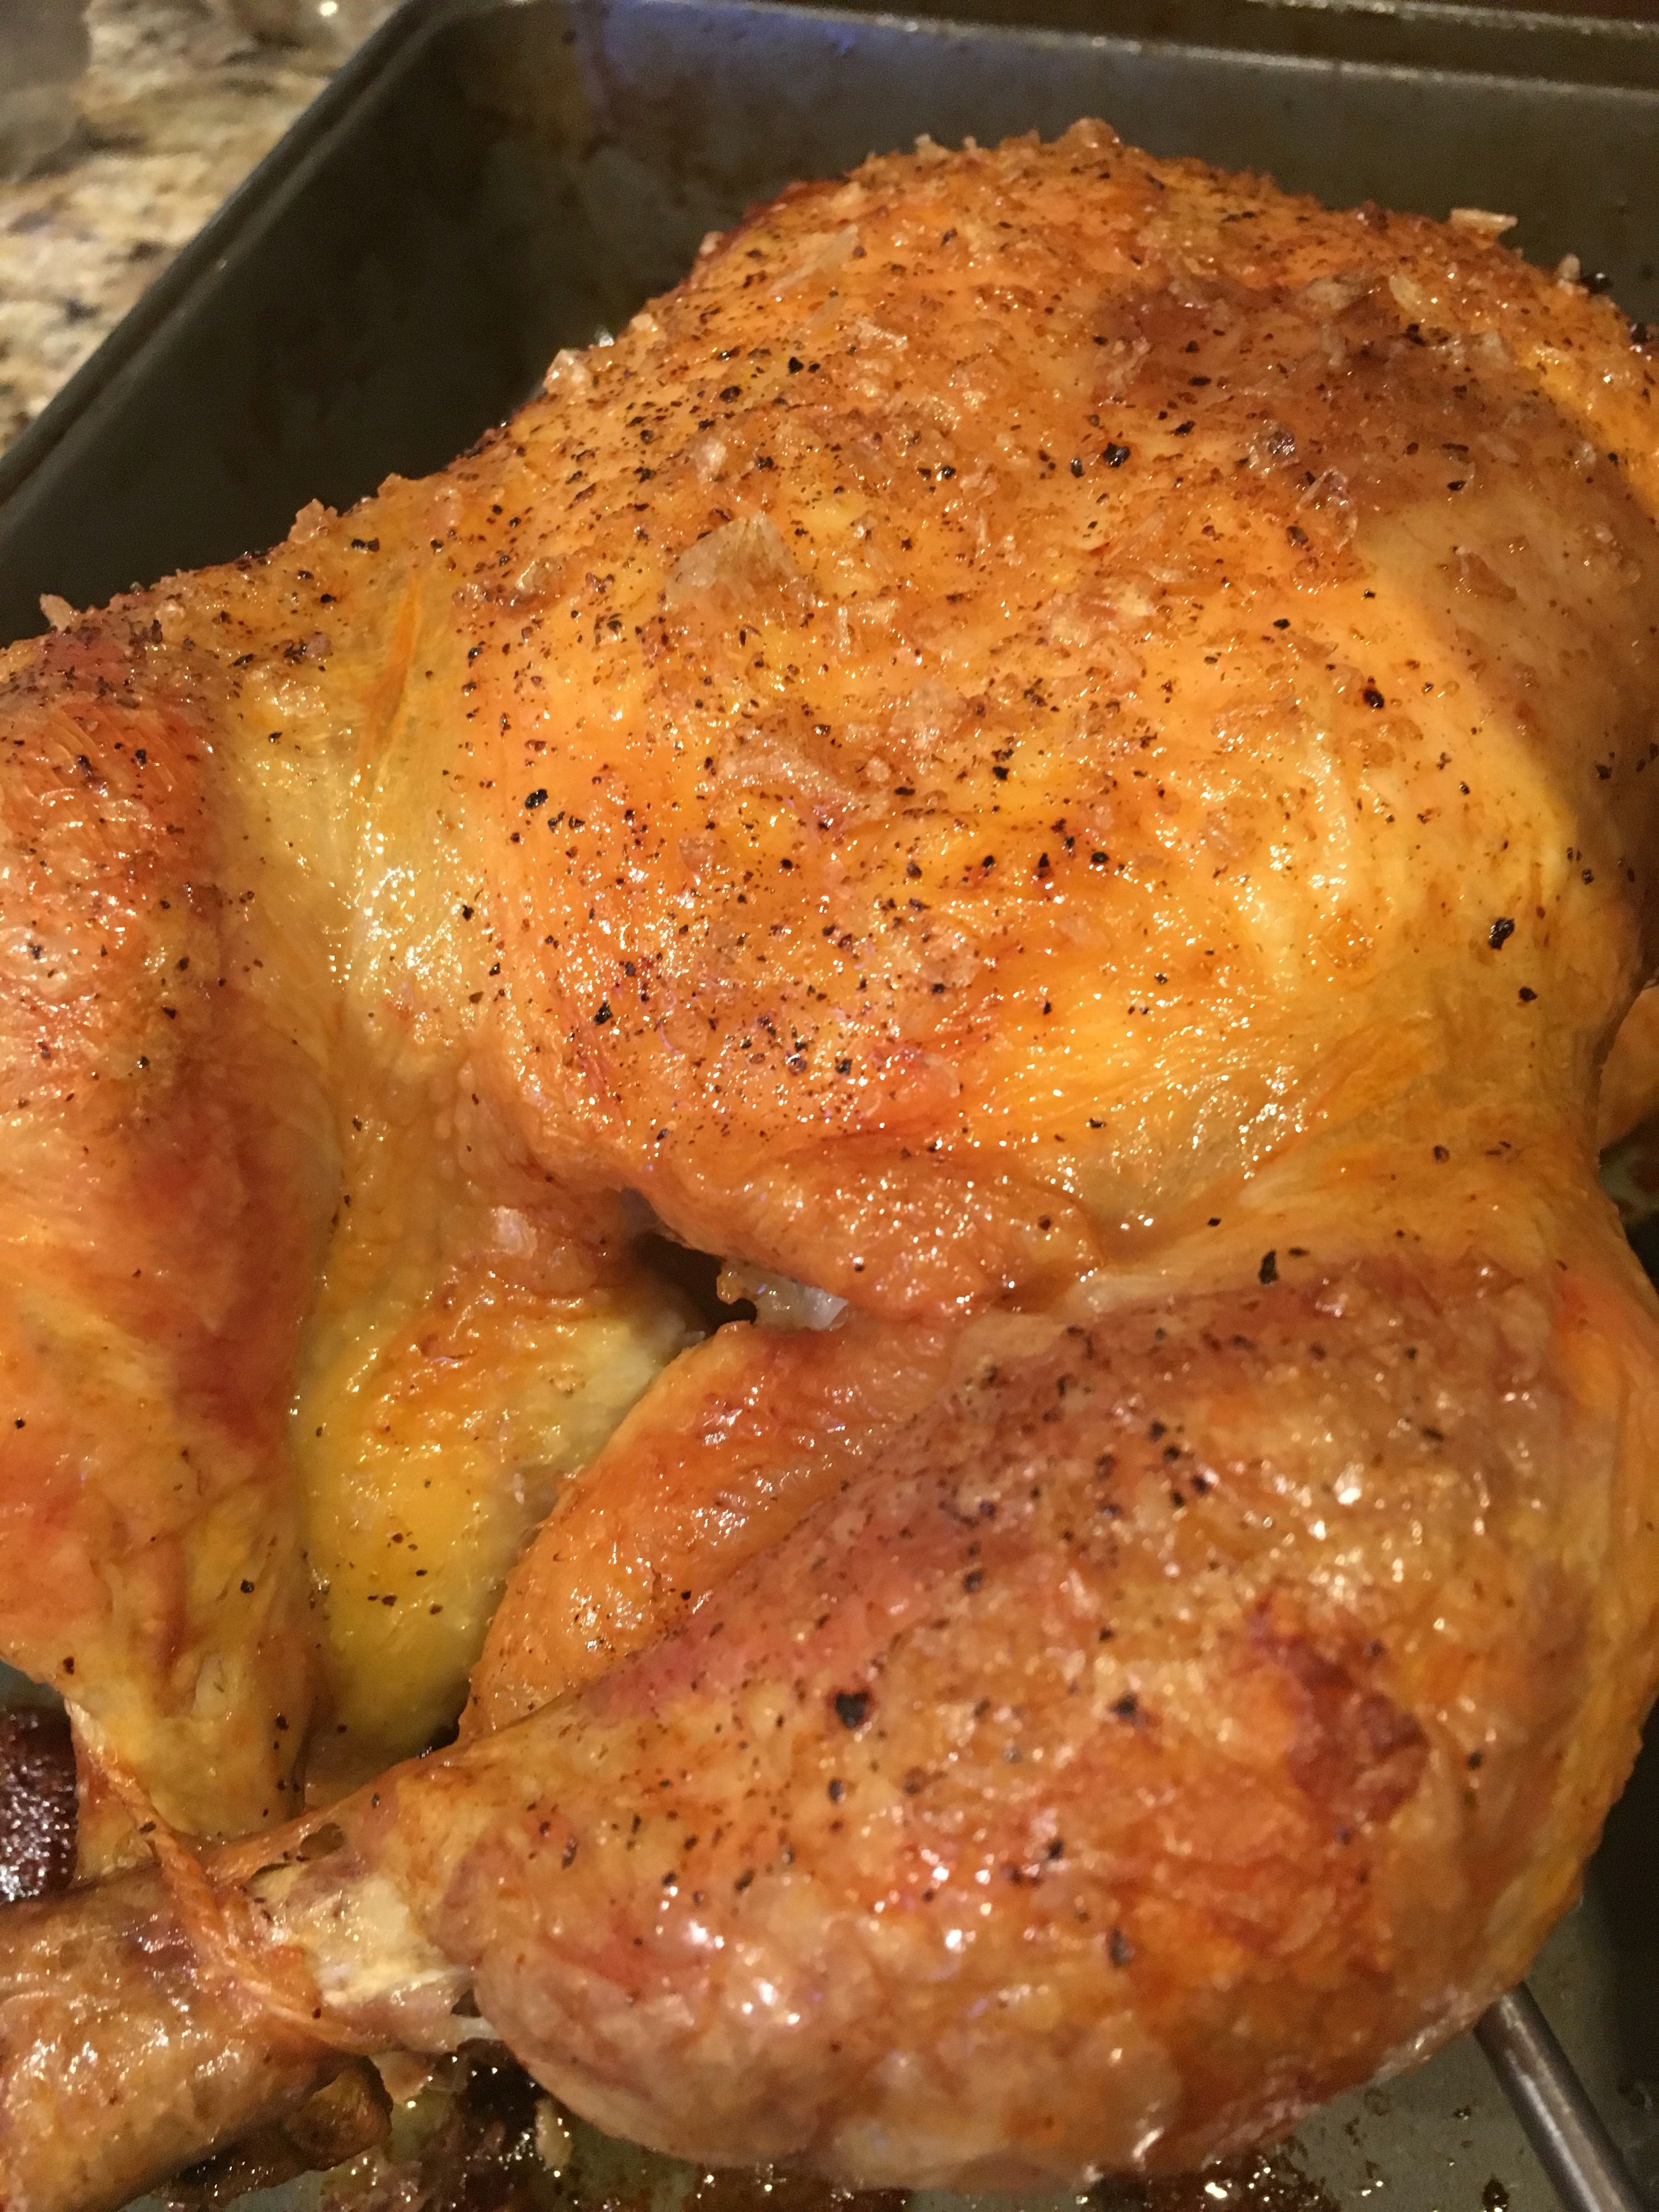 Thebestroastedchickenever  Cluck Cluck  Whole -2285